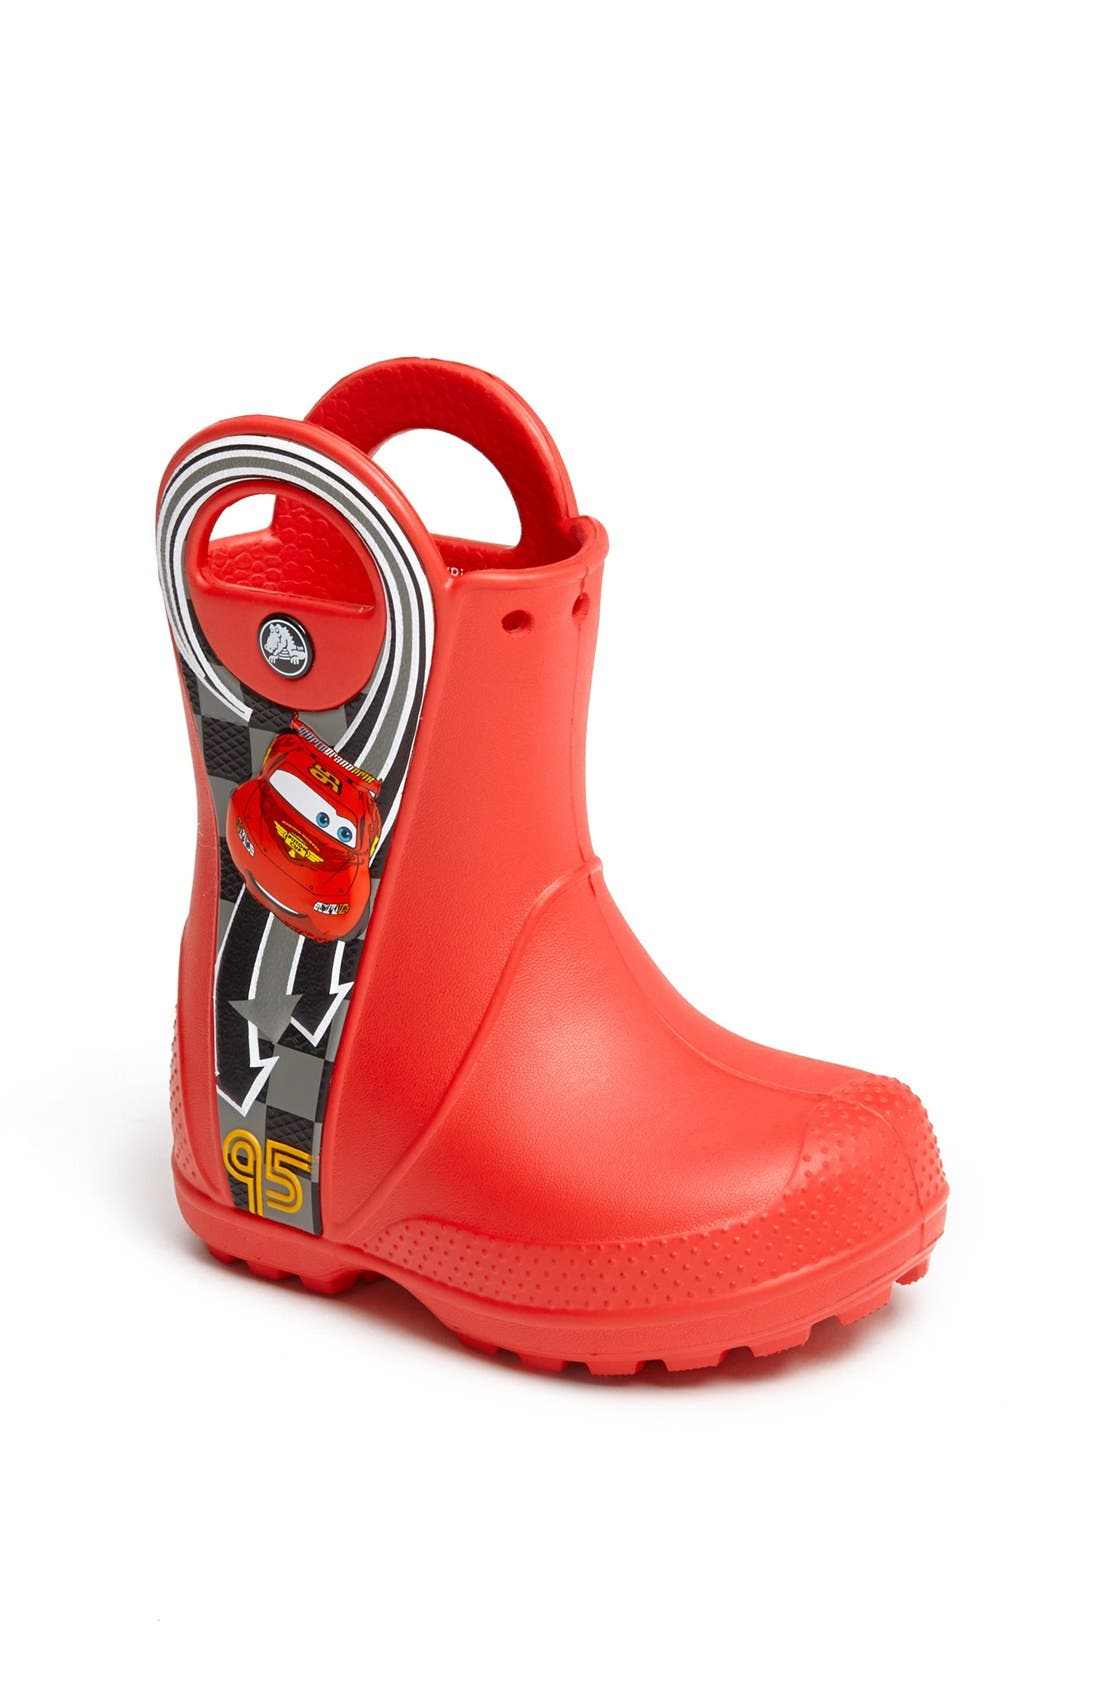 Main Image - CROCS™ 'Lightning McQueen' Rain Boot (Walker, Toddler & Little Kid)